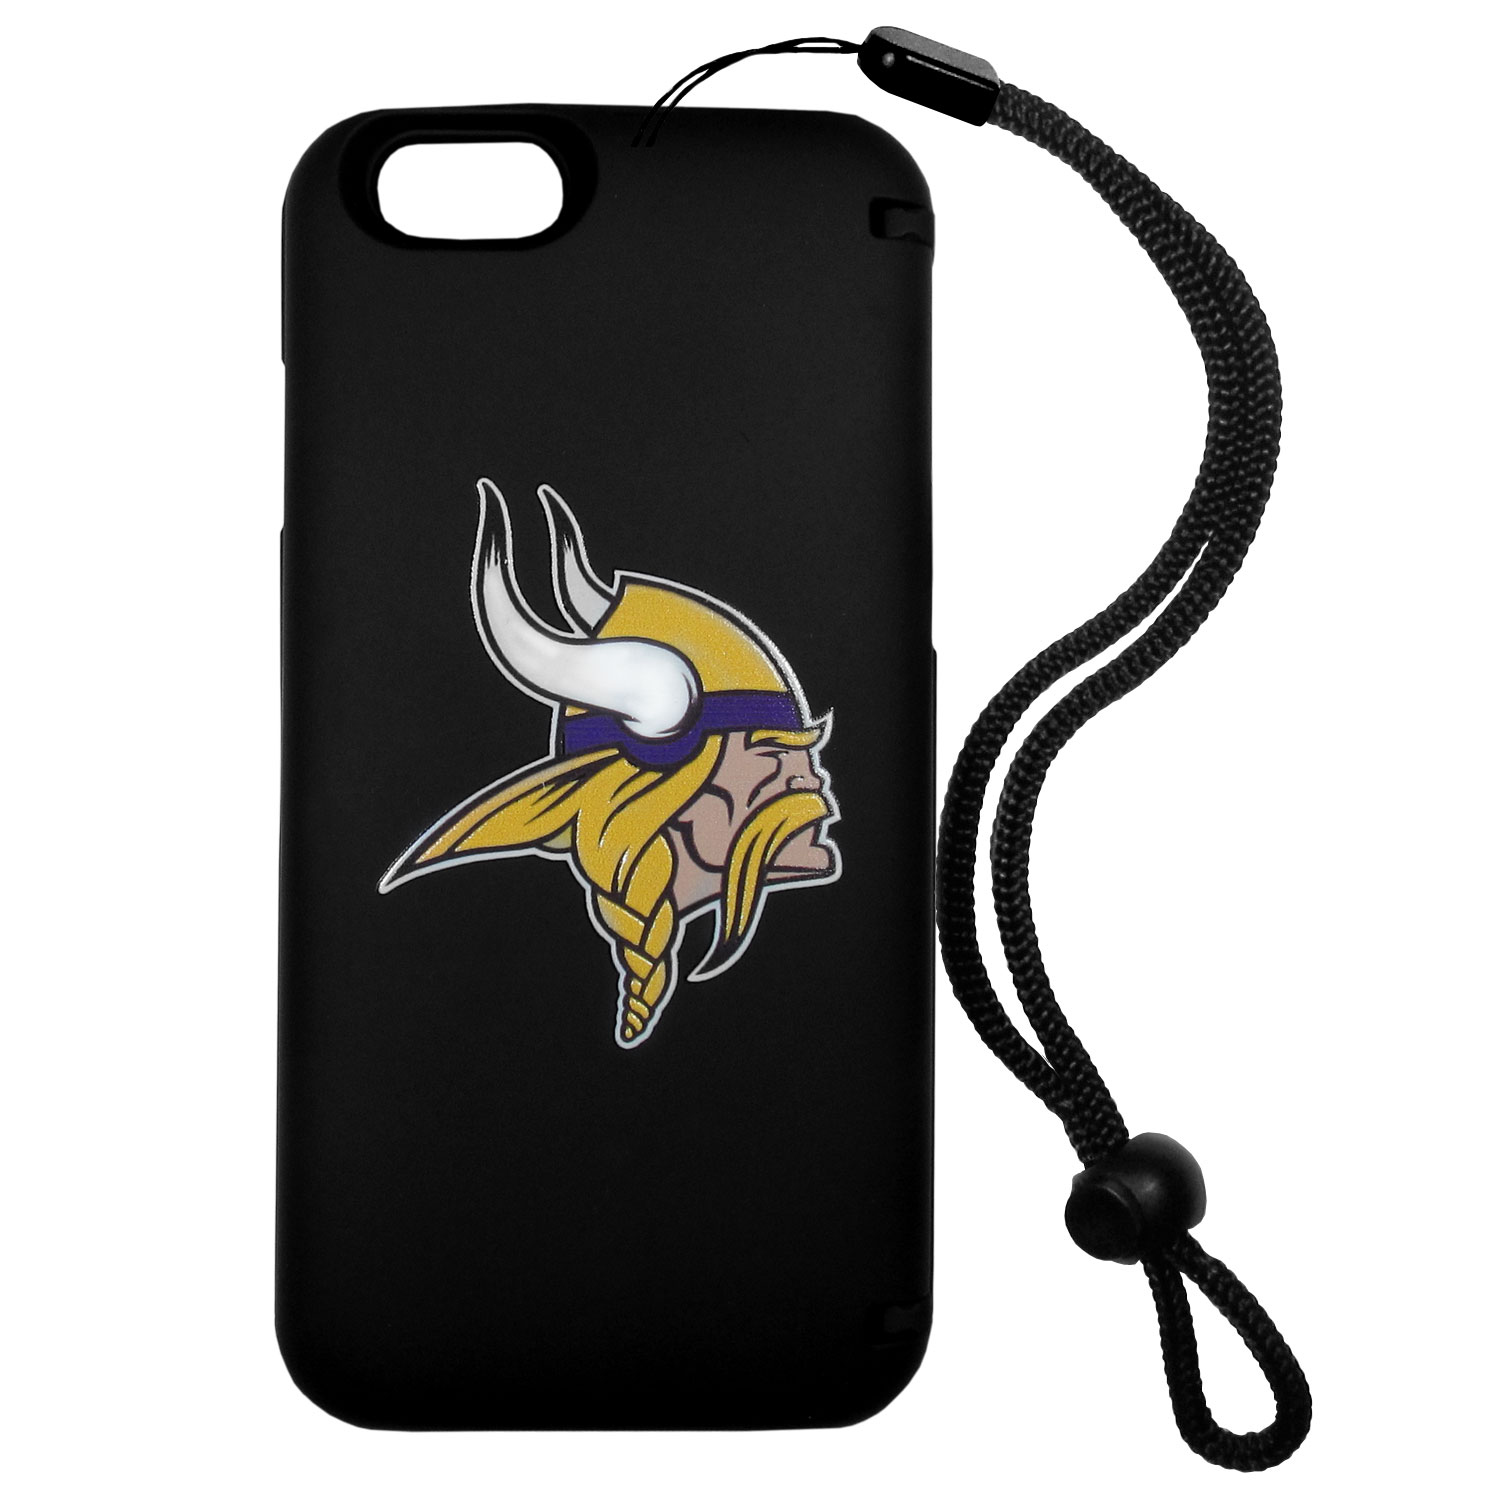 Minnesota Vikings iPhone 6 Plus Everything Case - This case really does have everything but the kitchen sink! The hidden compartment lets you keep your cards, money and tickets to the big game safe and secure and has a compact mirror so you can make sure your game face is ready to go. It also comes with a kickstand to make chatting and watching videos a breeze. The wrist strap allows you to travel with ease with your everything case. If that's not enough, it also comes with the Minnesota Vikings logo printed in expert detail on the front.